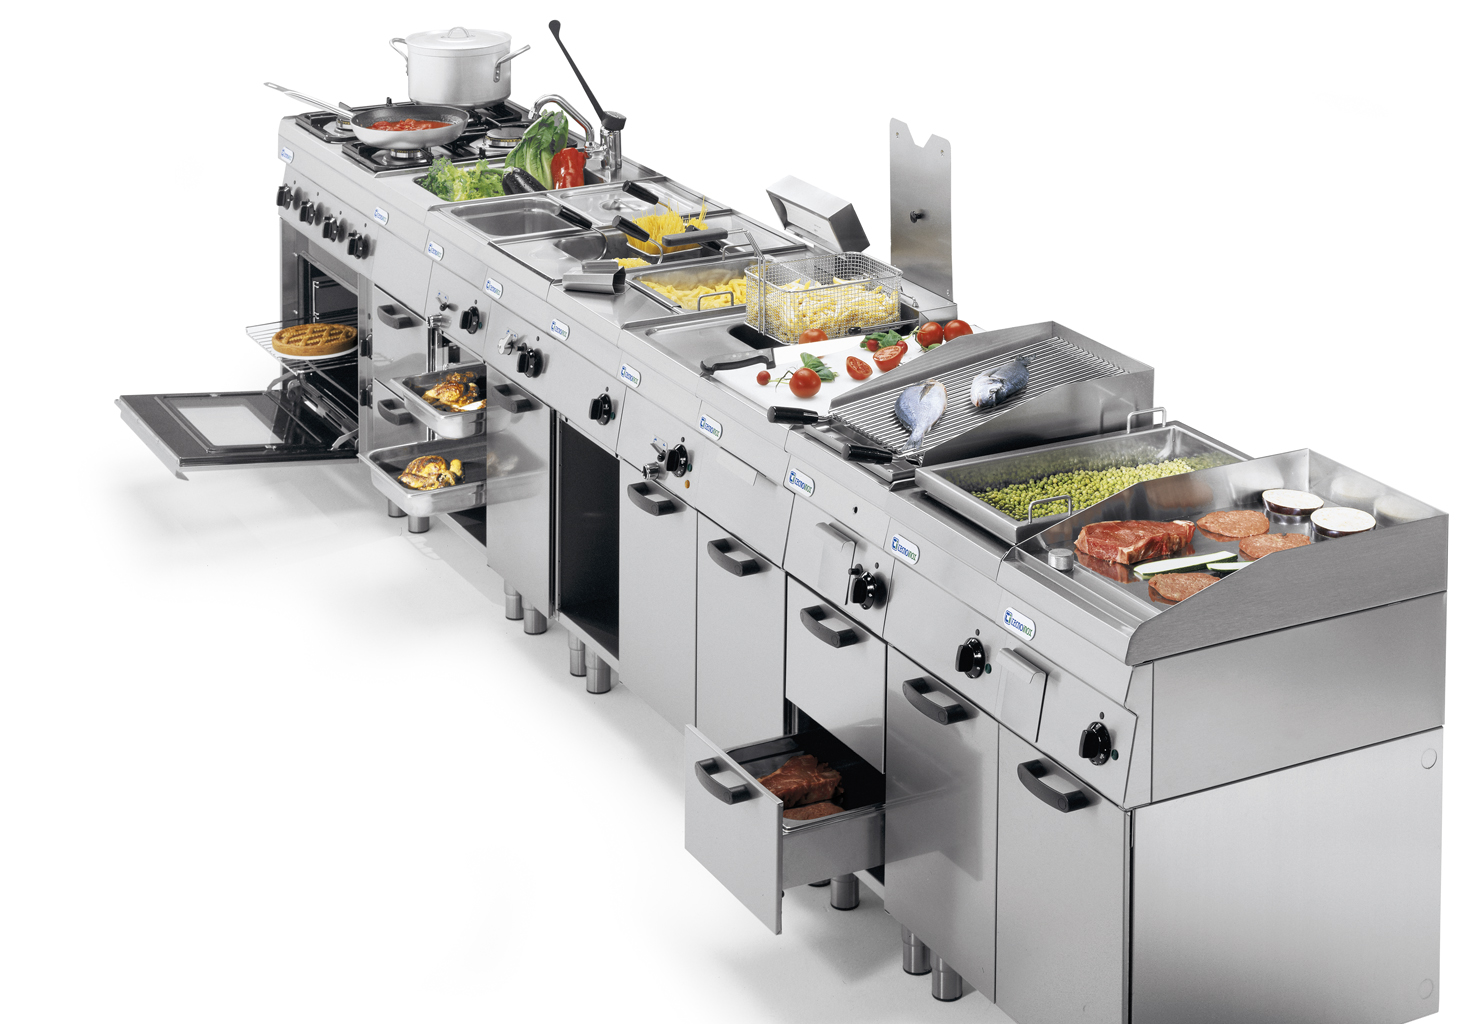 industrial kitchen supplies best pull down faucet restaurant and commercial equipment in rochester ny